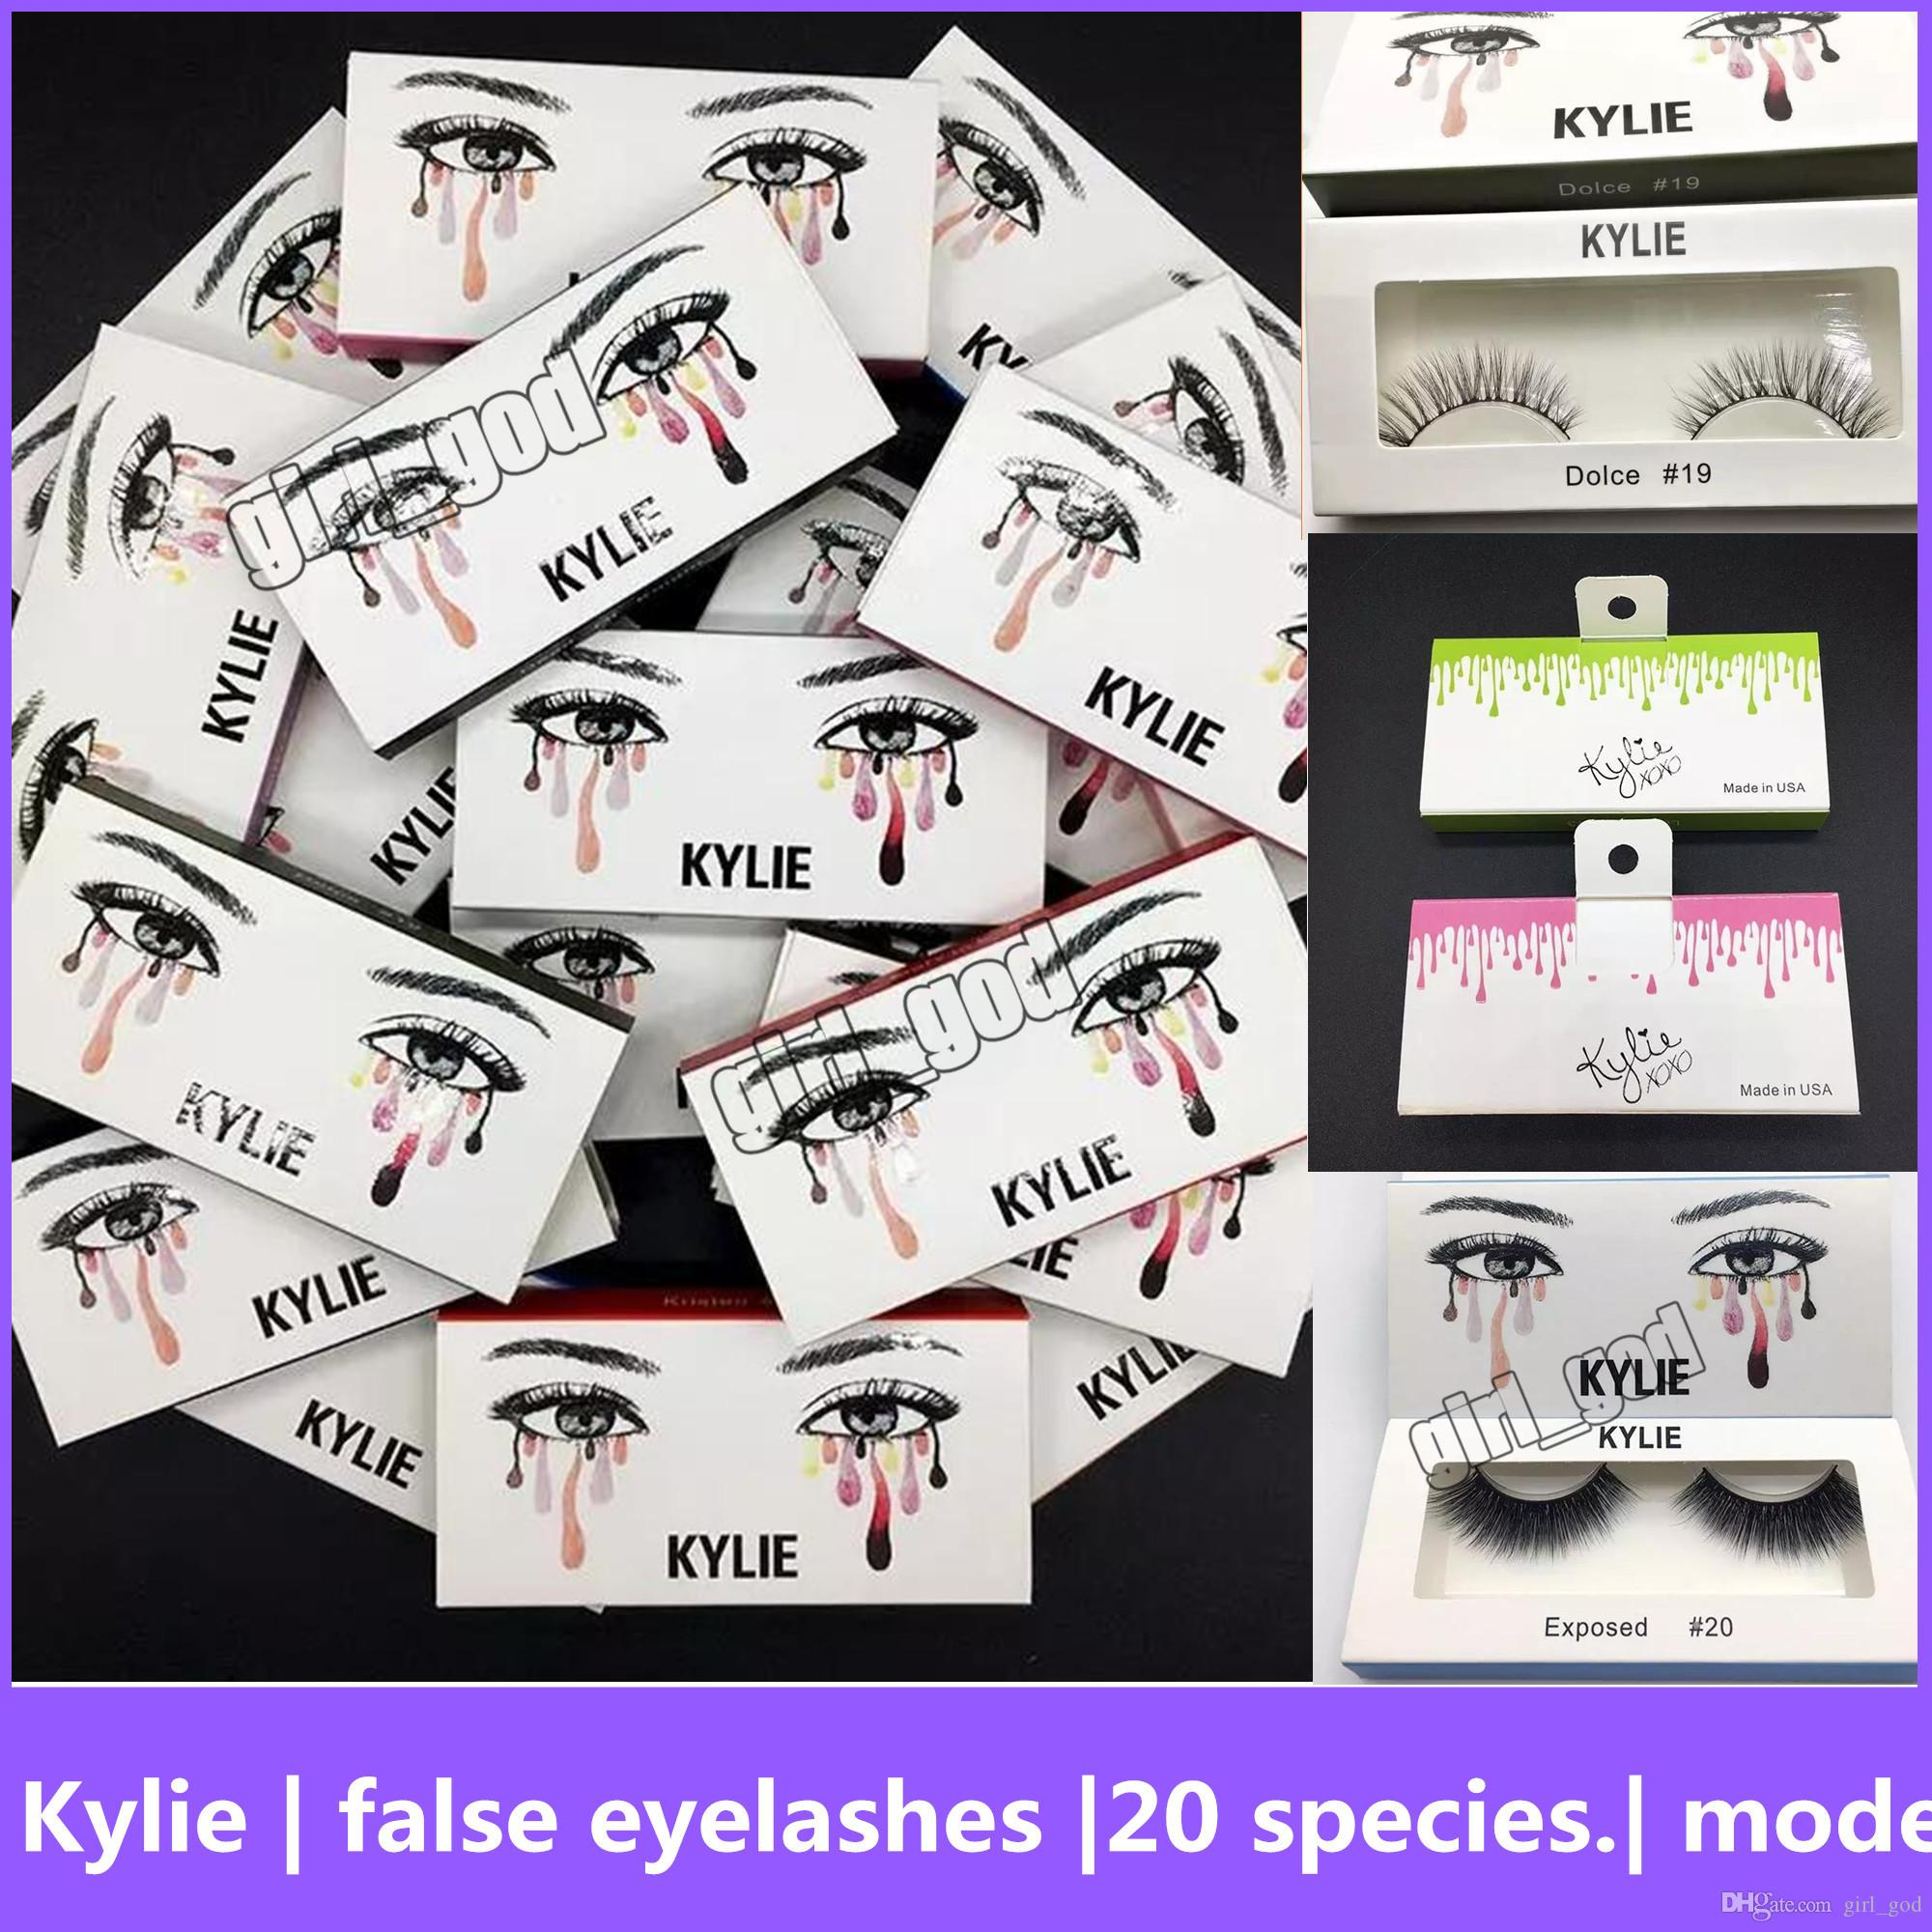 05146c2691d Kylie False Eyelashes 20 Model Eyelash Extensions Handmade Fake Lashes  Voluminous Fake Eyelashes For Eye Lashes Makeup False Eyelash Kylie False  Eyelash ...